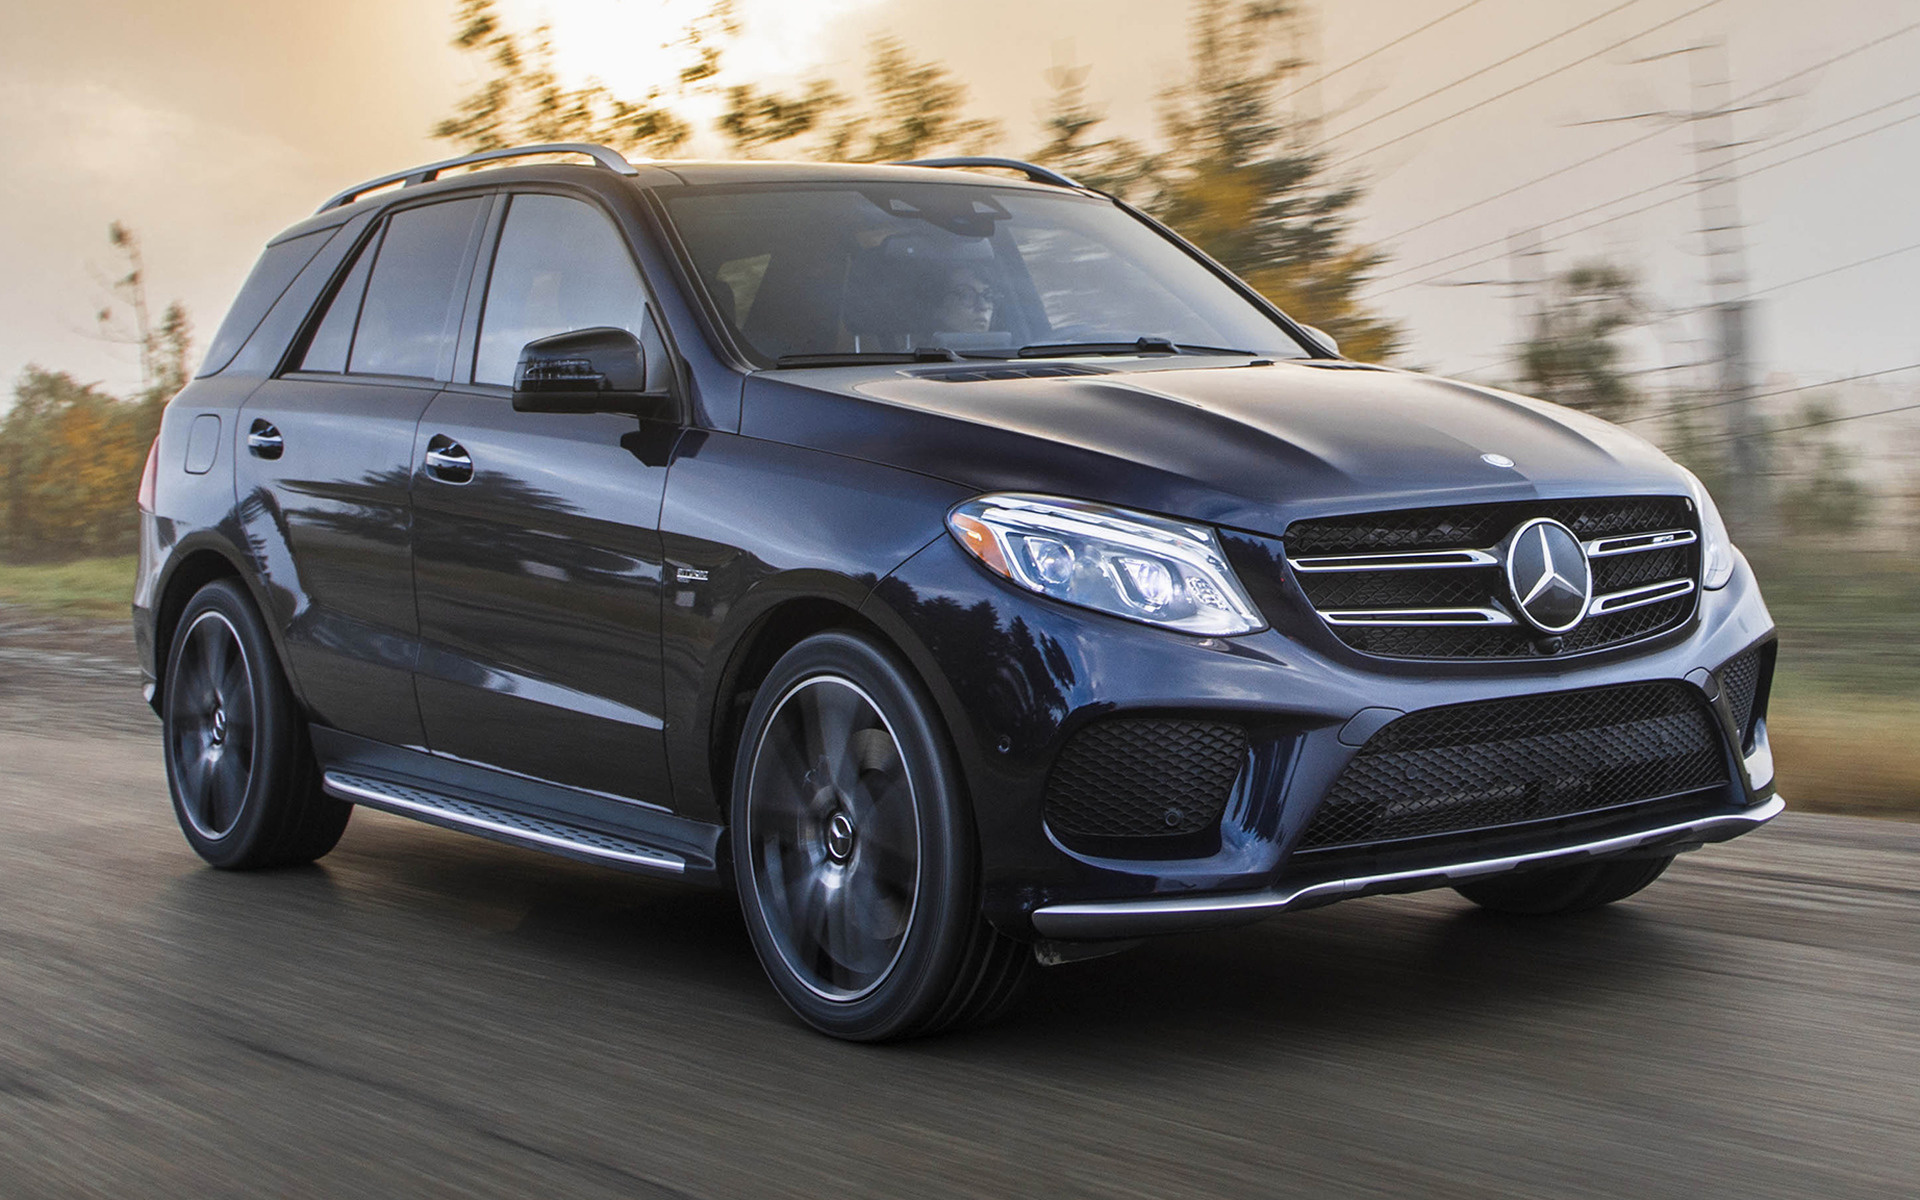 Gle 63s Amg >> 2017 Mercedes-AMG GLE 43 (US) - Wallpapers and HD Images ...